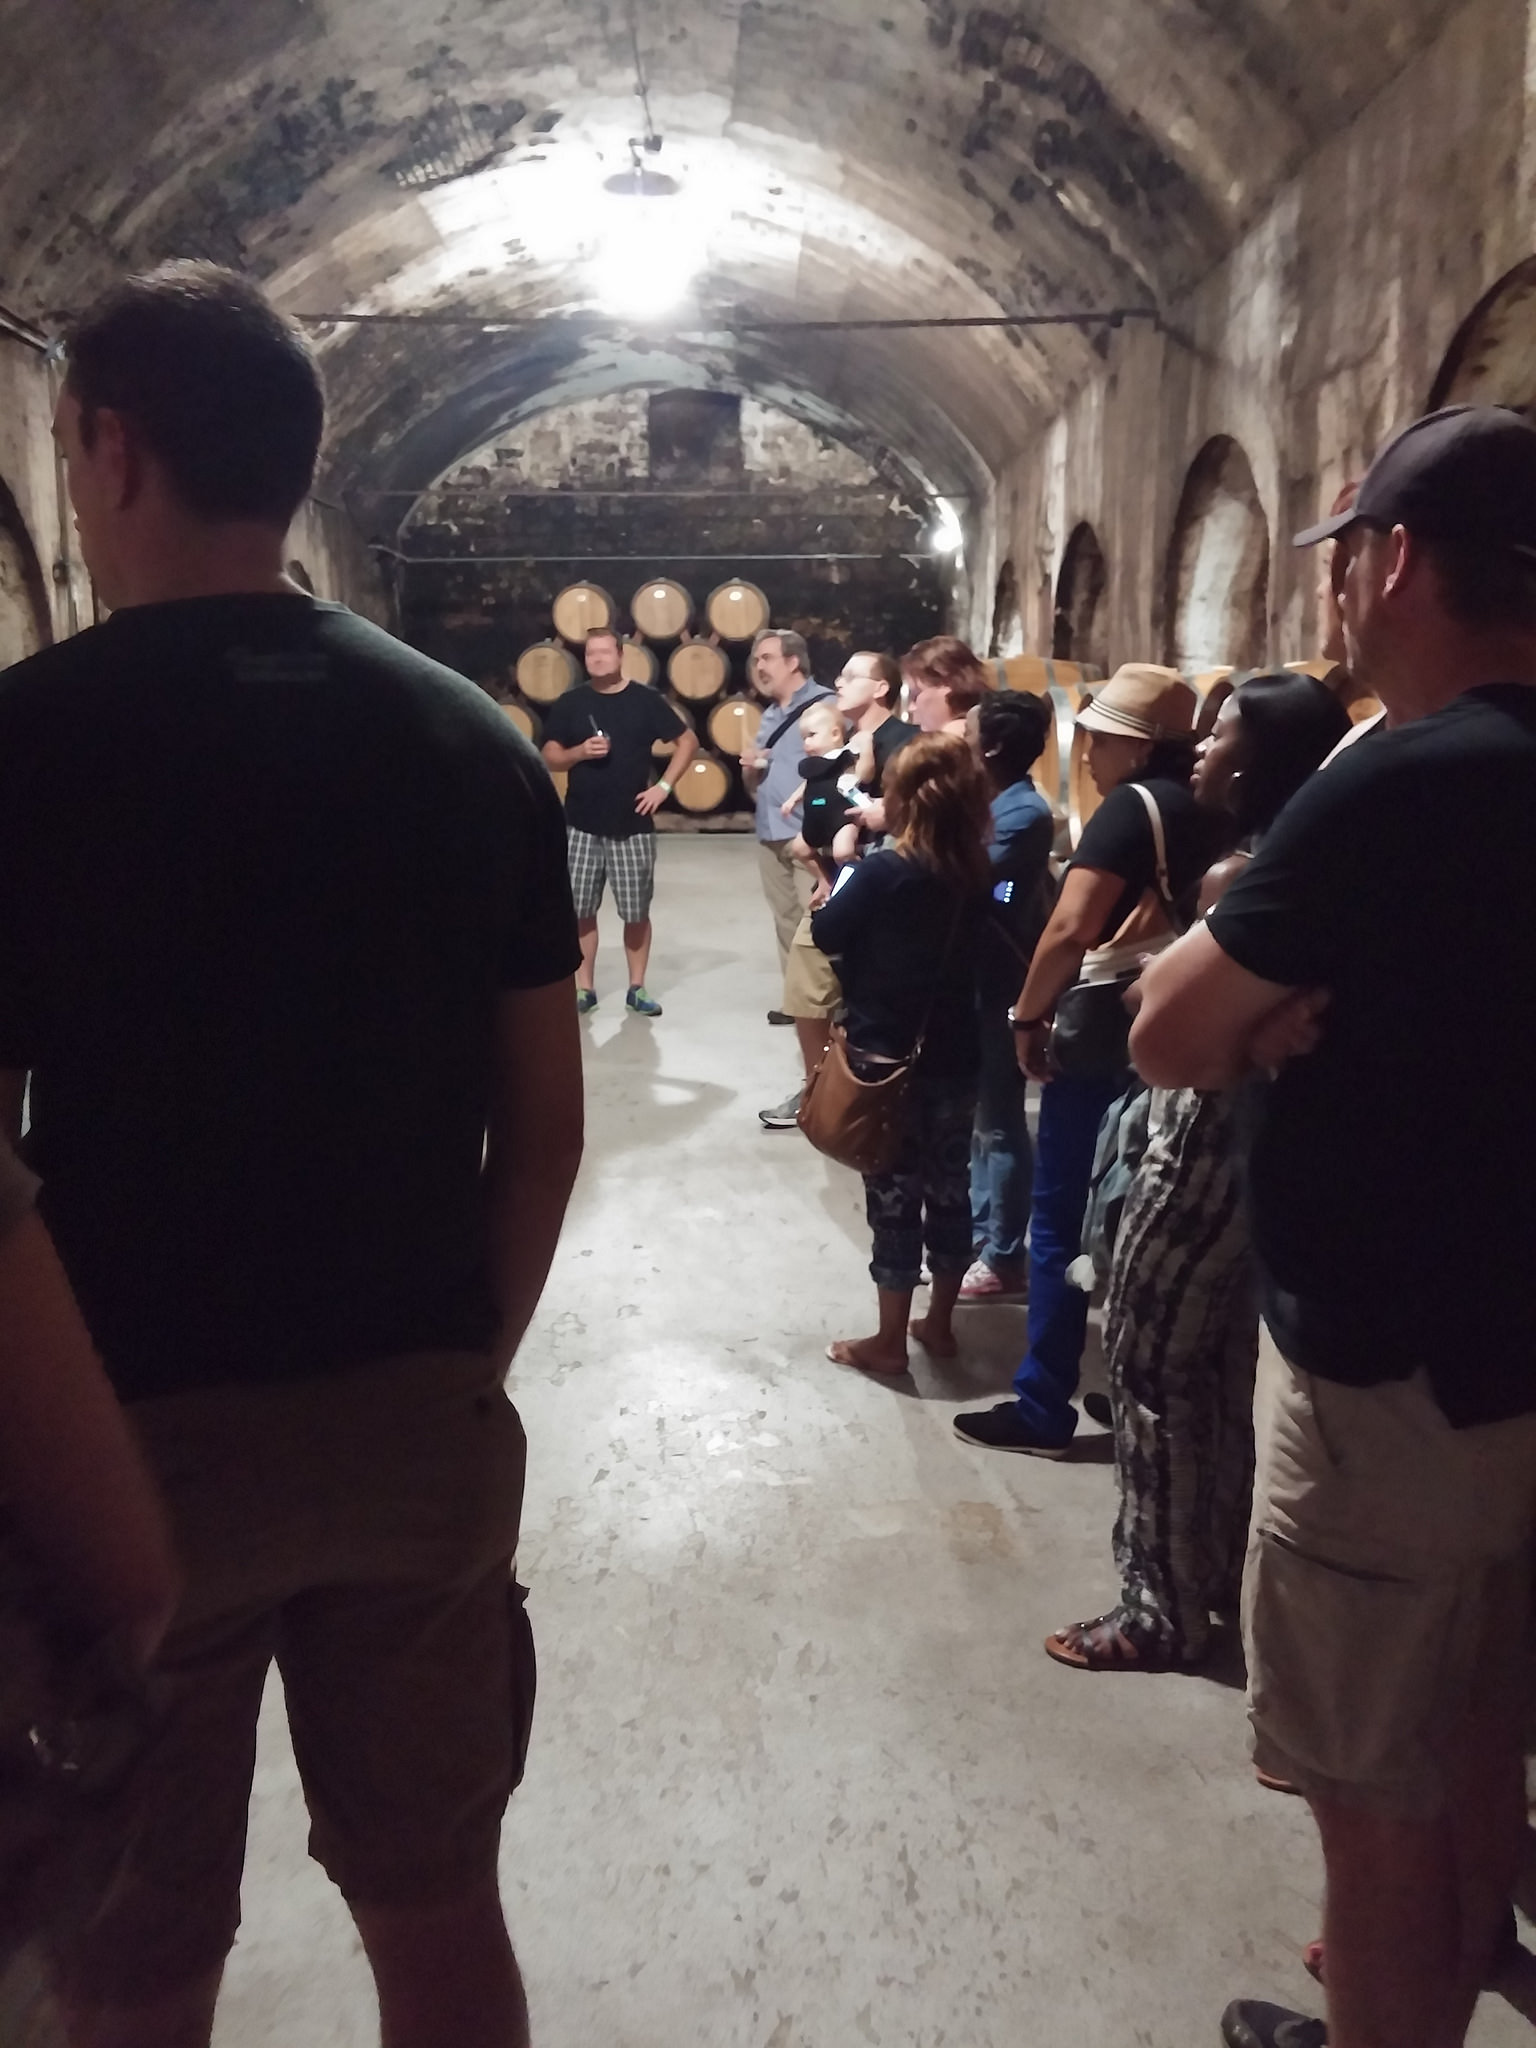 Cellar tour at Stone Hill Winery in Hermann, Missouri